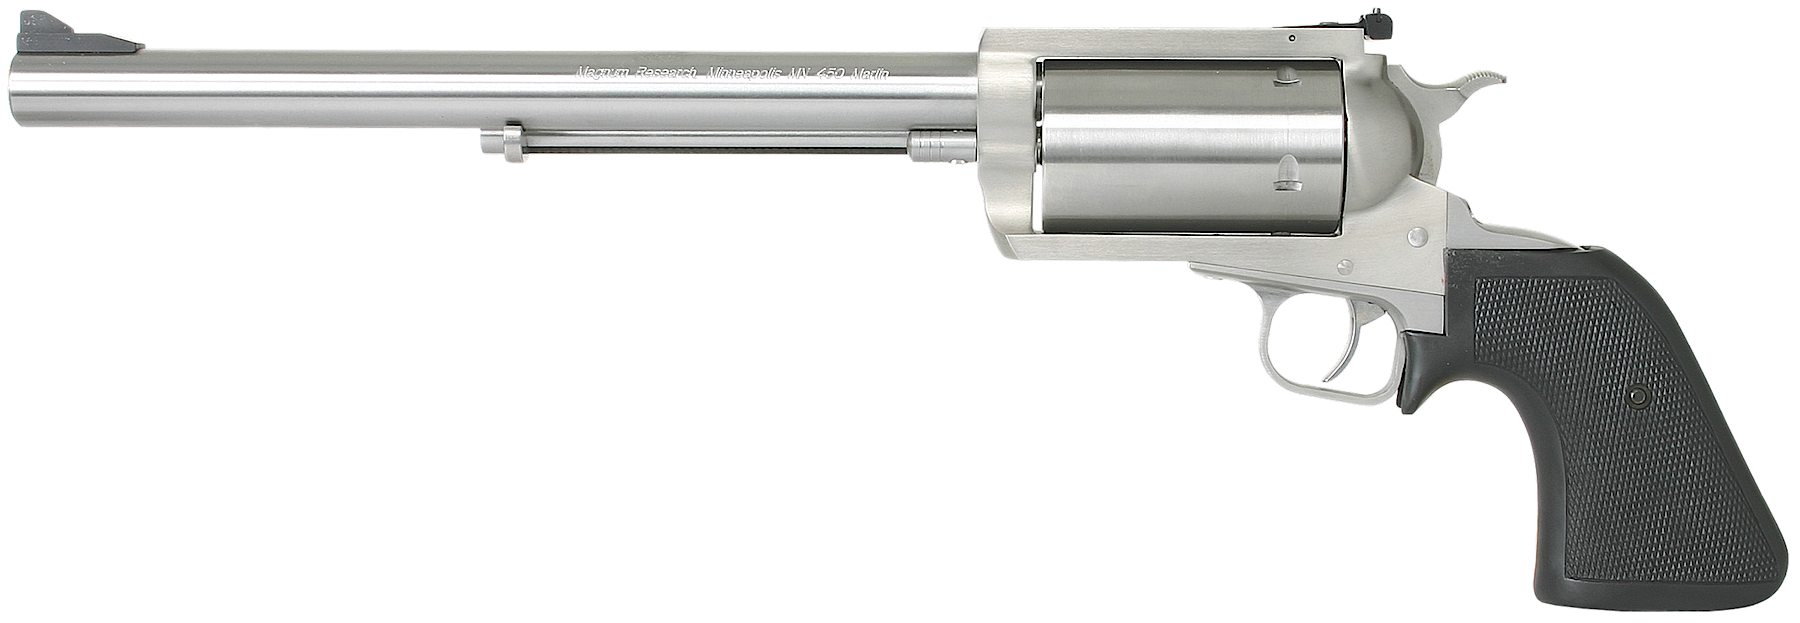 Magnum Research® BFR Long Cylinder Revolver - .444 Marlin 5rd - 10